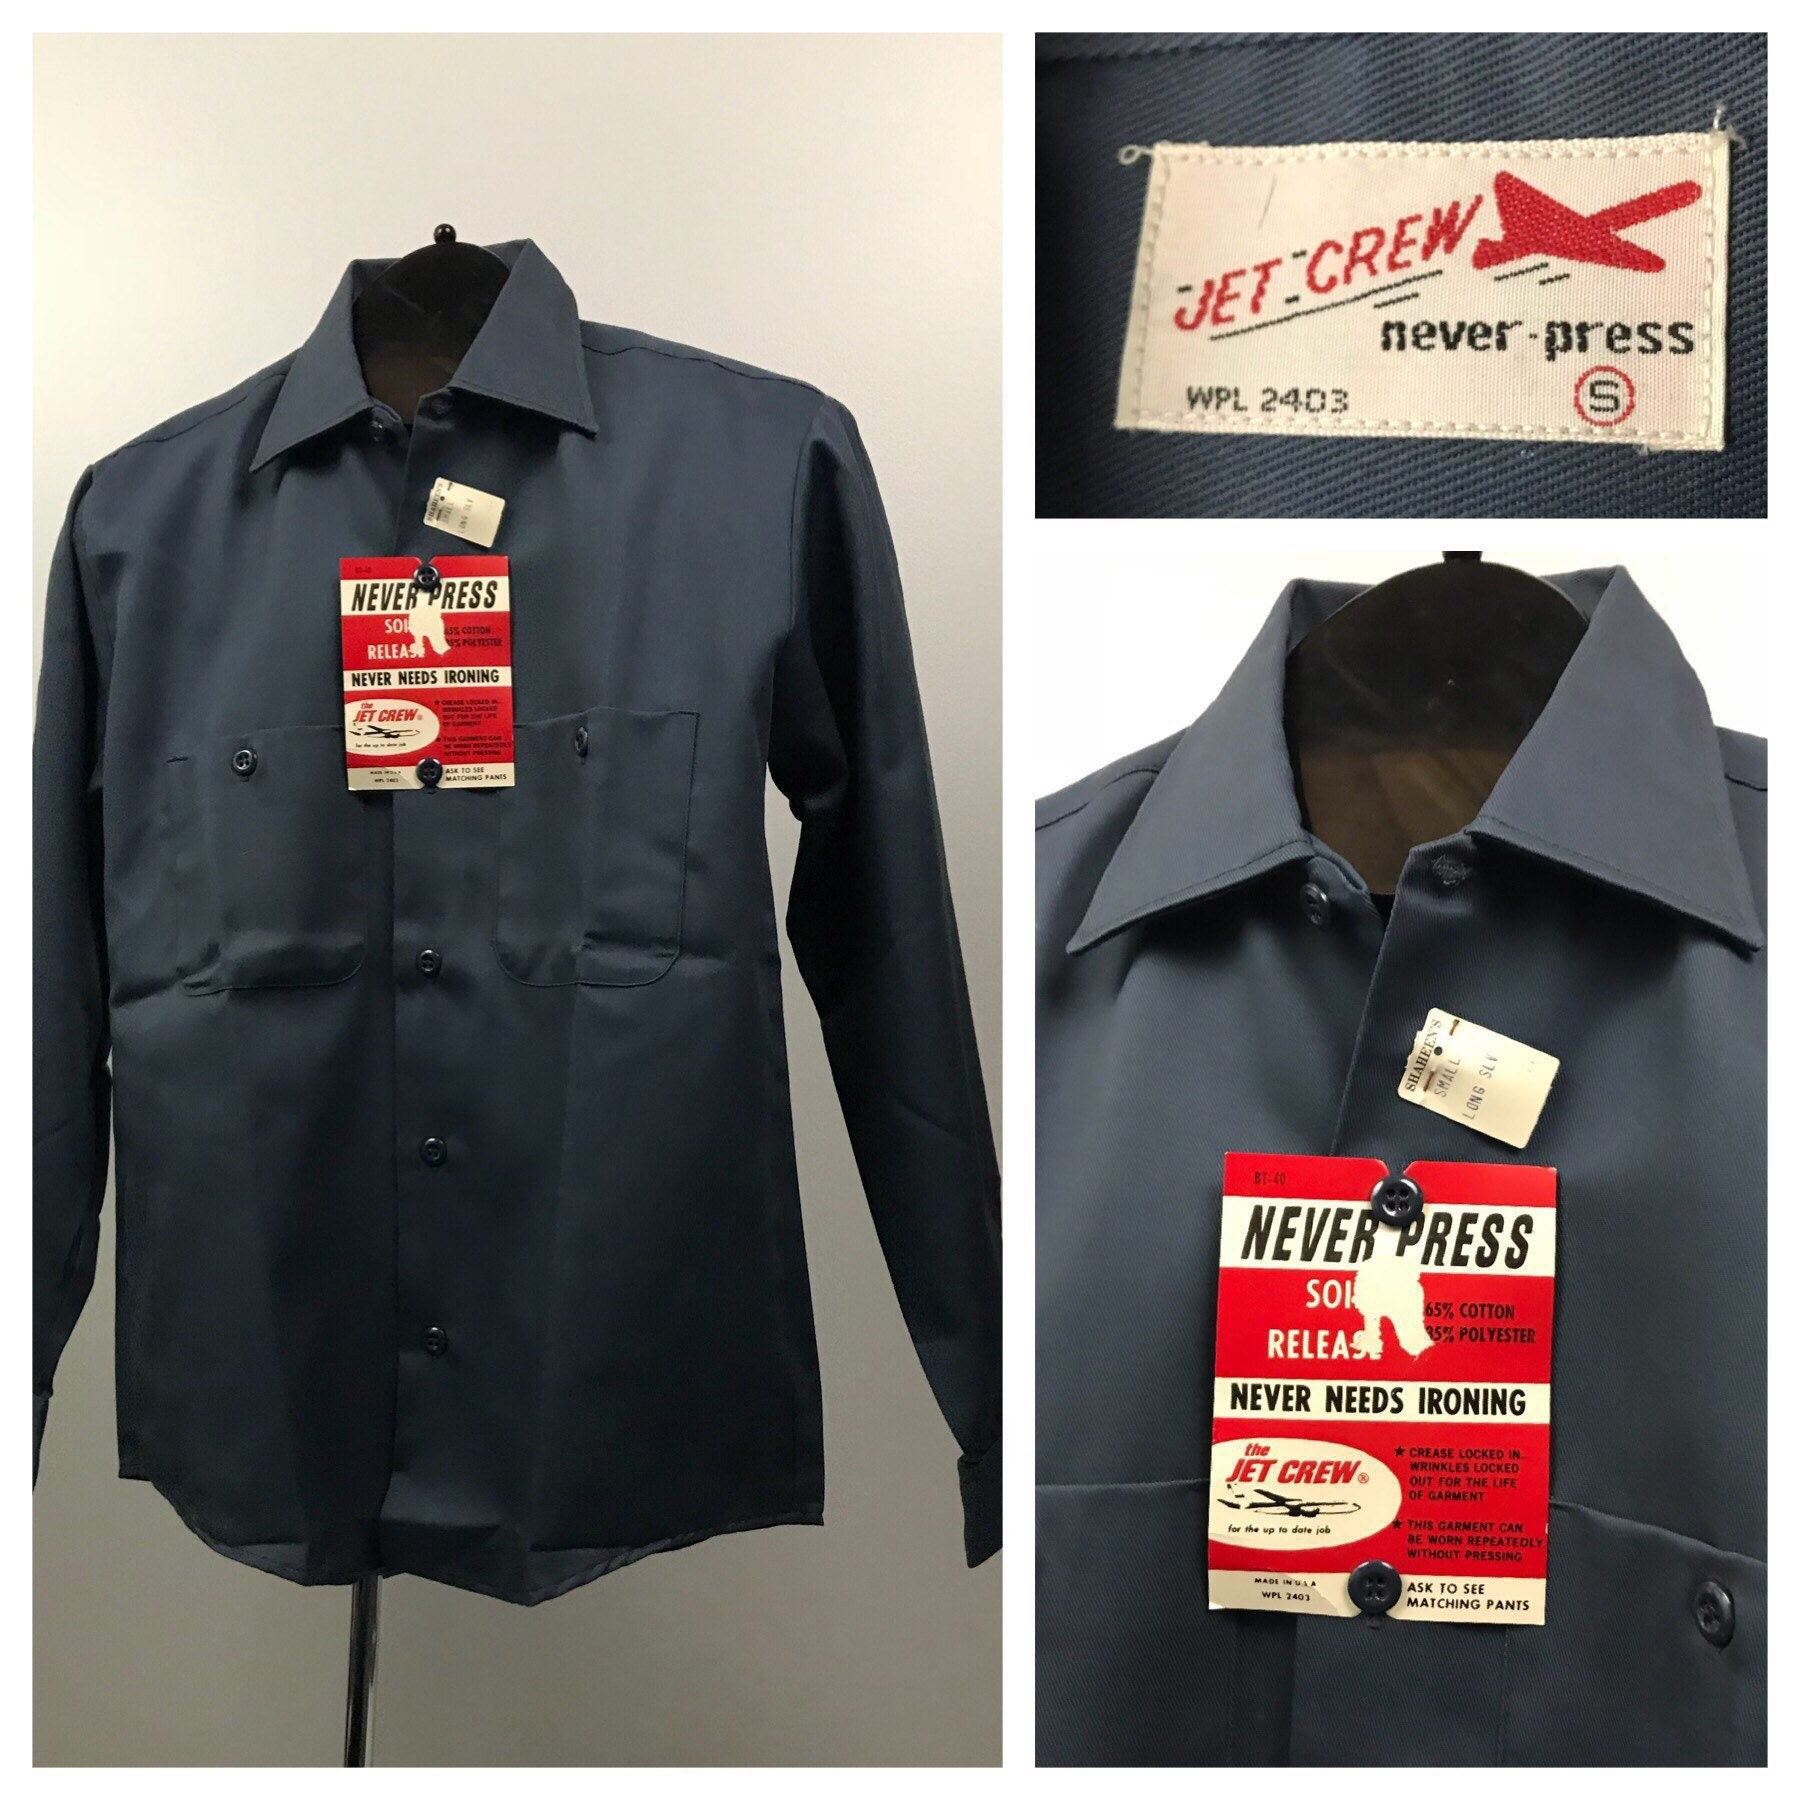 competitive price c9a39 0f81b Vintage NOS 1950s 1960s Jet Crew Blue Open Collar Button Down   Etsy